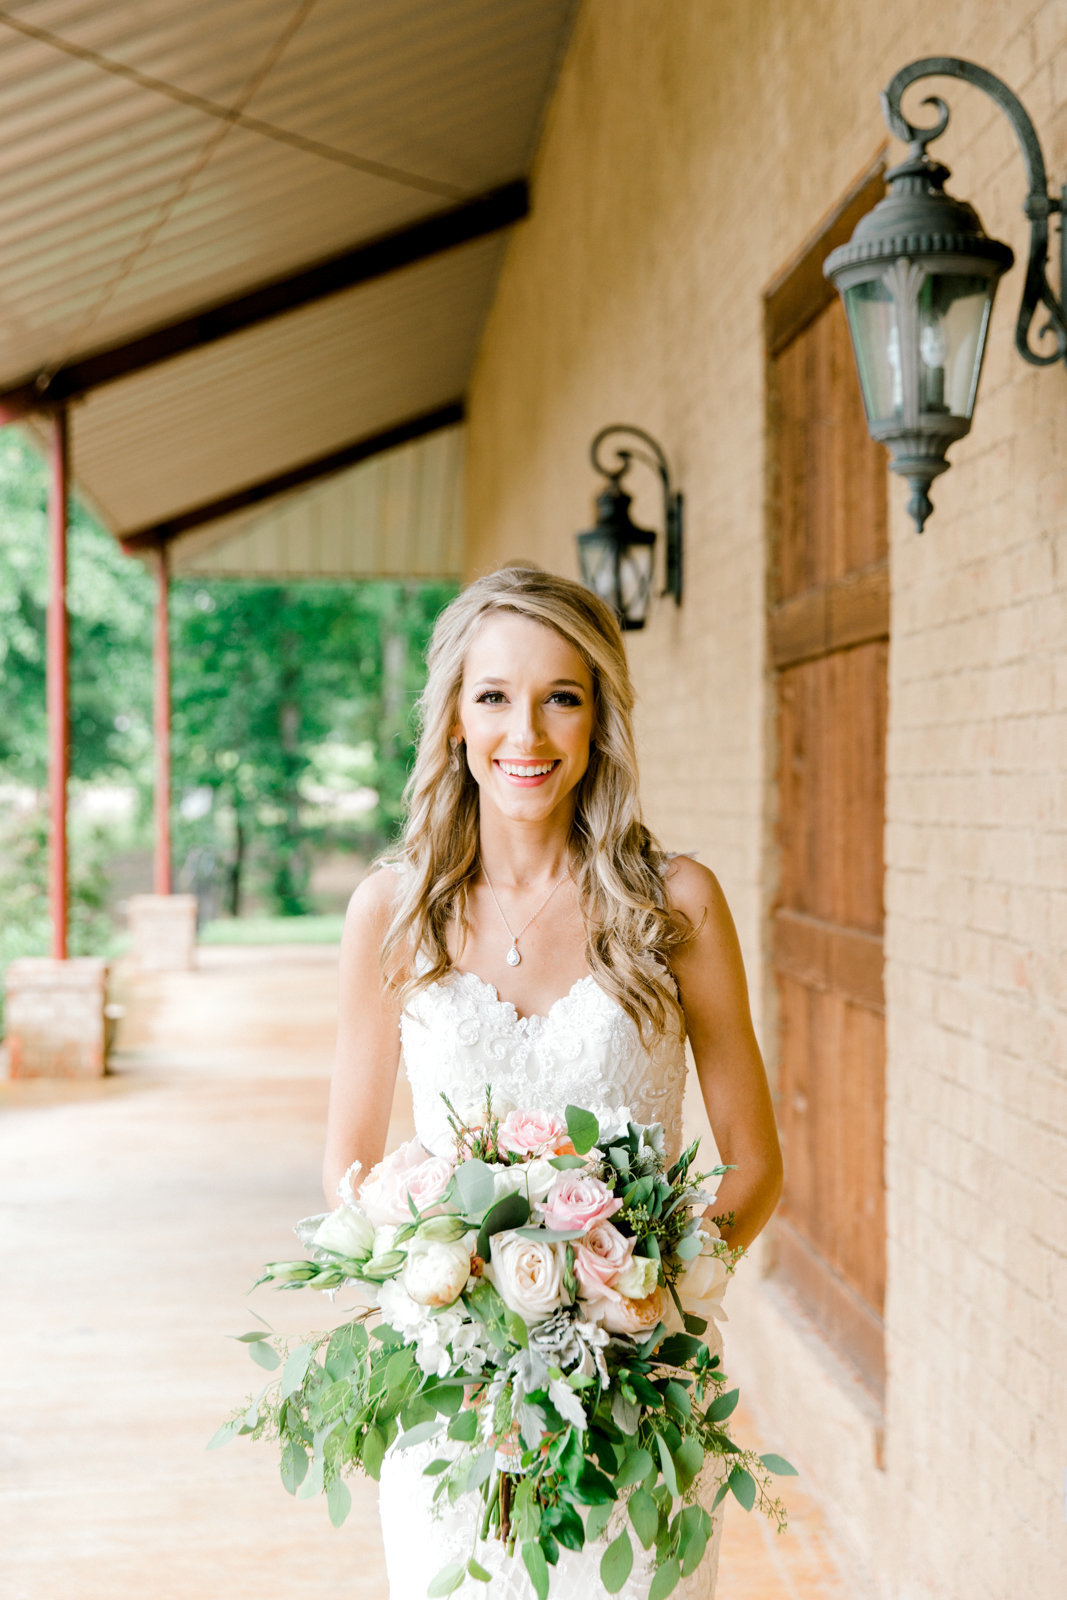 Sydney & William_Lindsay Ott Photography-22